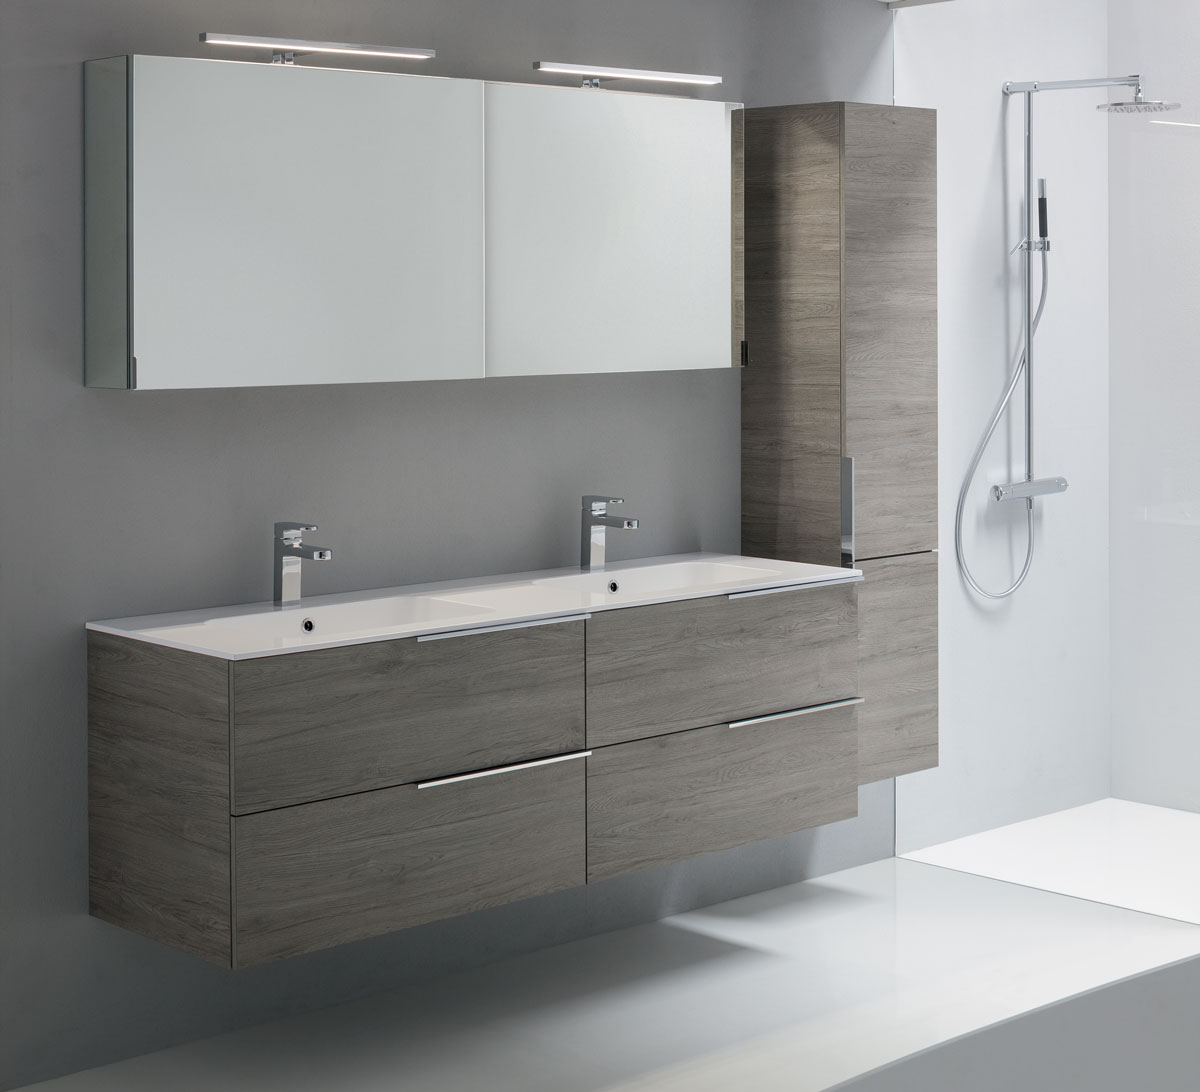 Ready collection by oasis modern design bathroom furniture for Small bathroom oasis